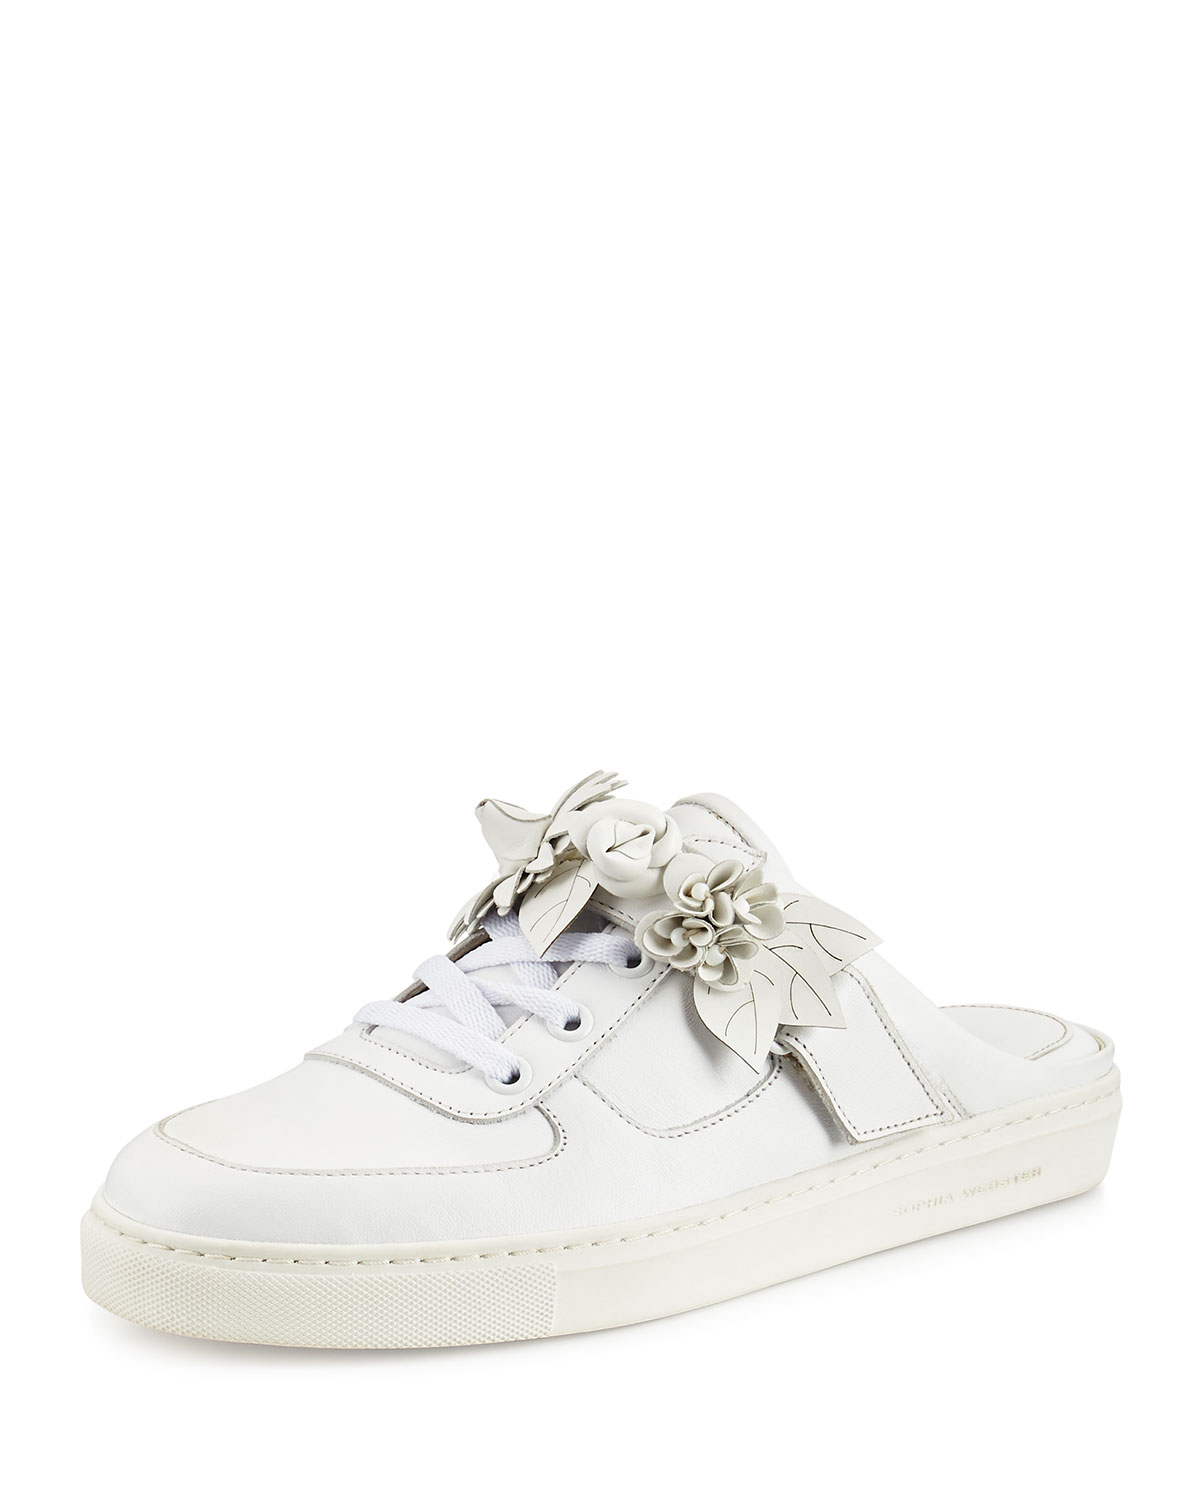 Sophia Webster Lilico Jessie Leather Slide Sneaker White